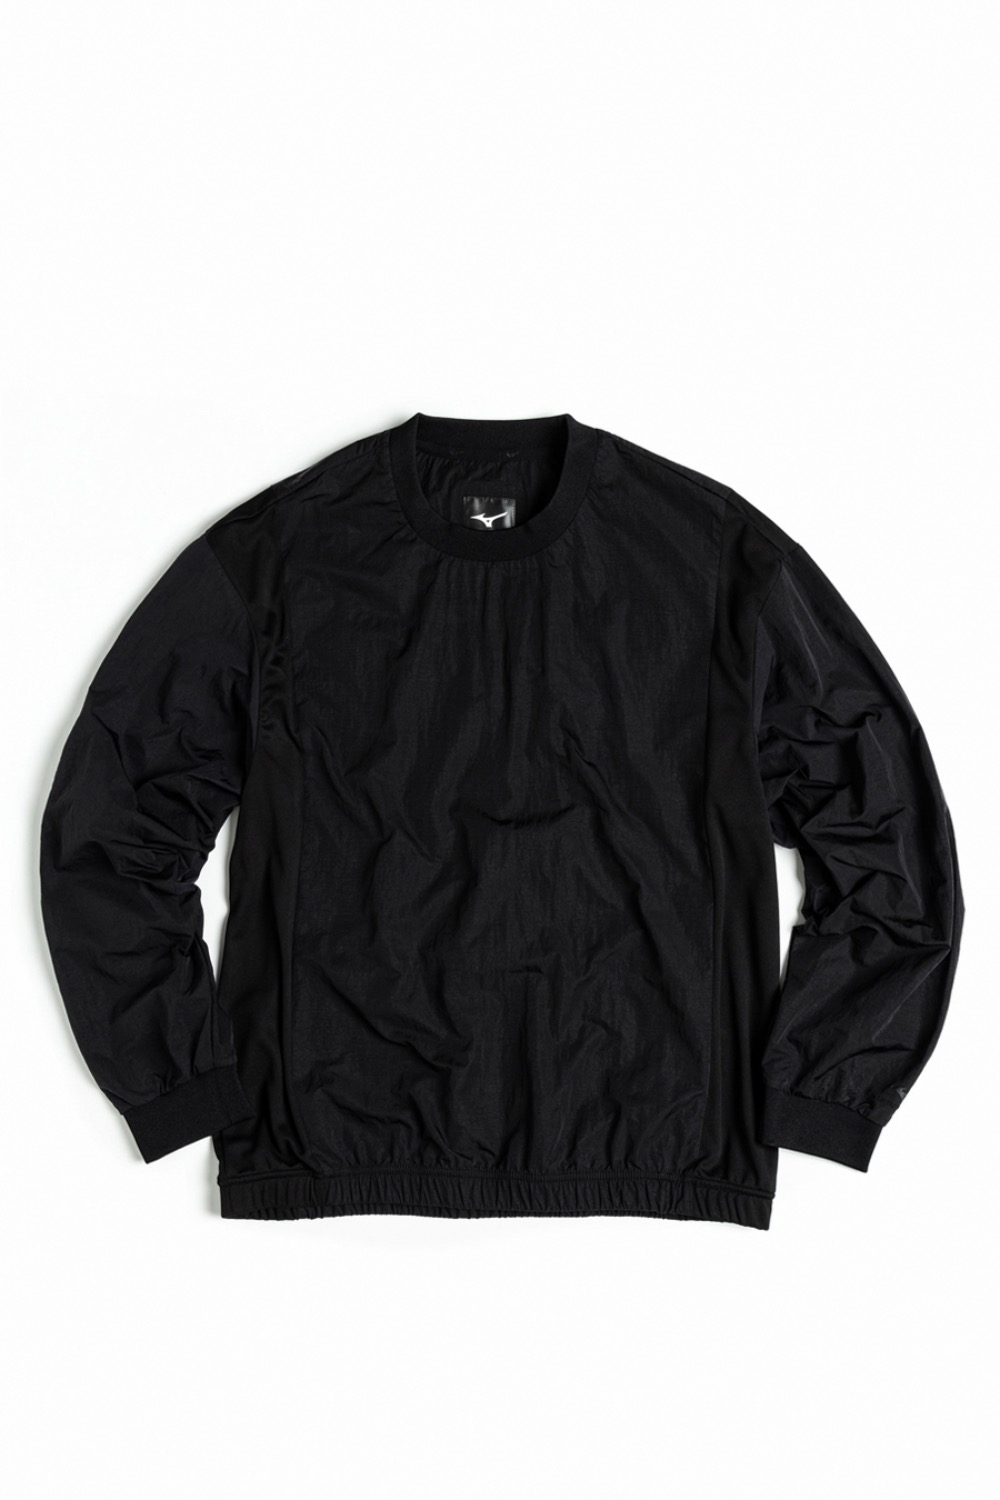 (MIZUNO) DW SWEAT SHIRT BLACK